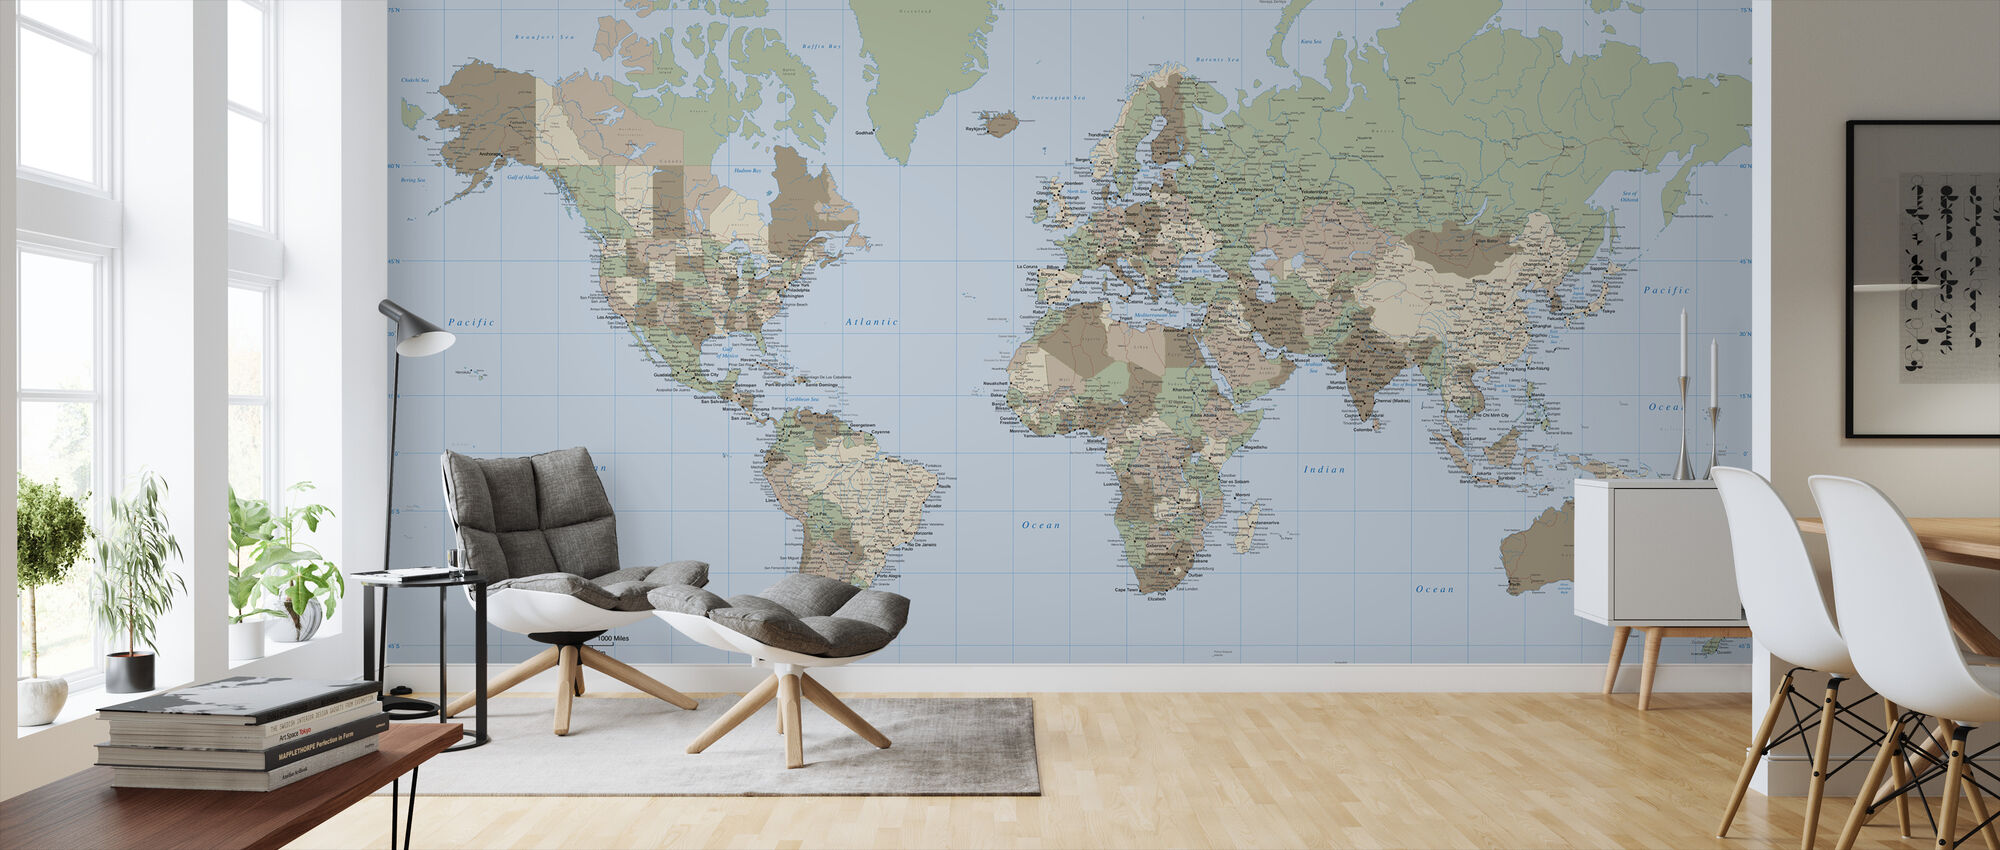 World Map Vintage - Wallpaper - Living Room